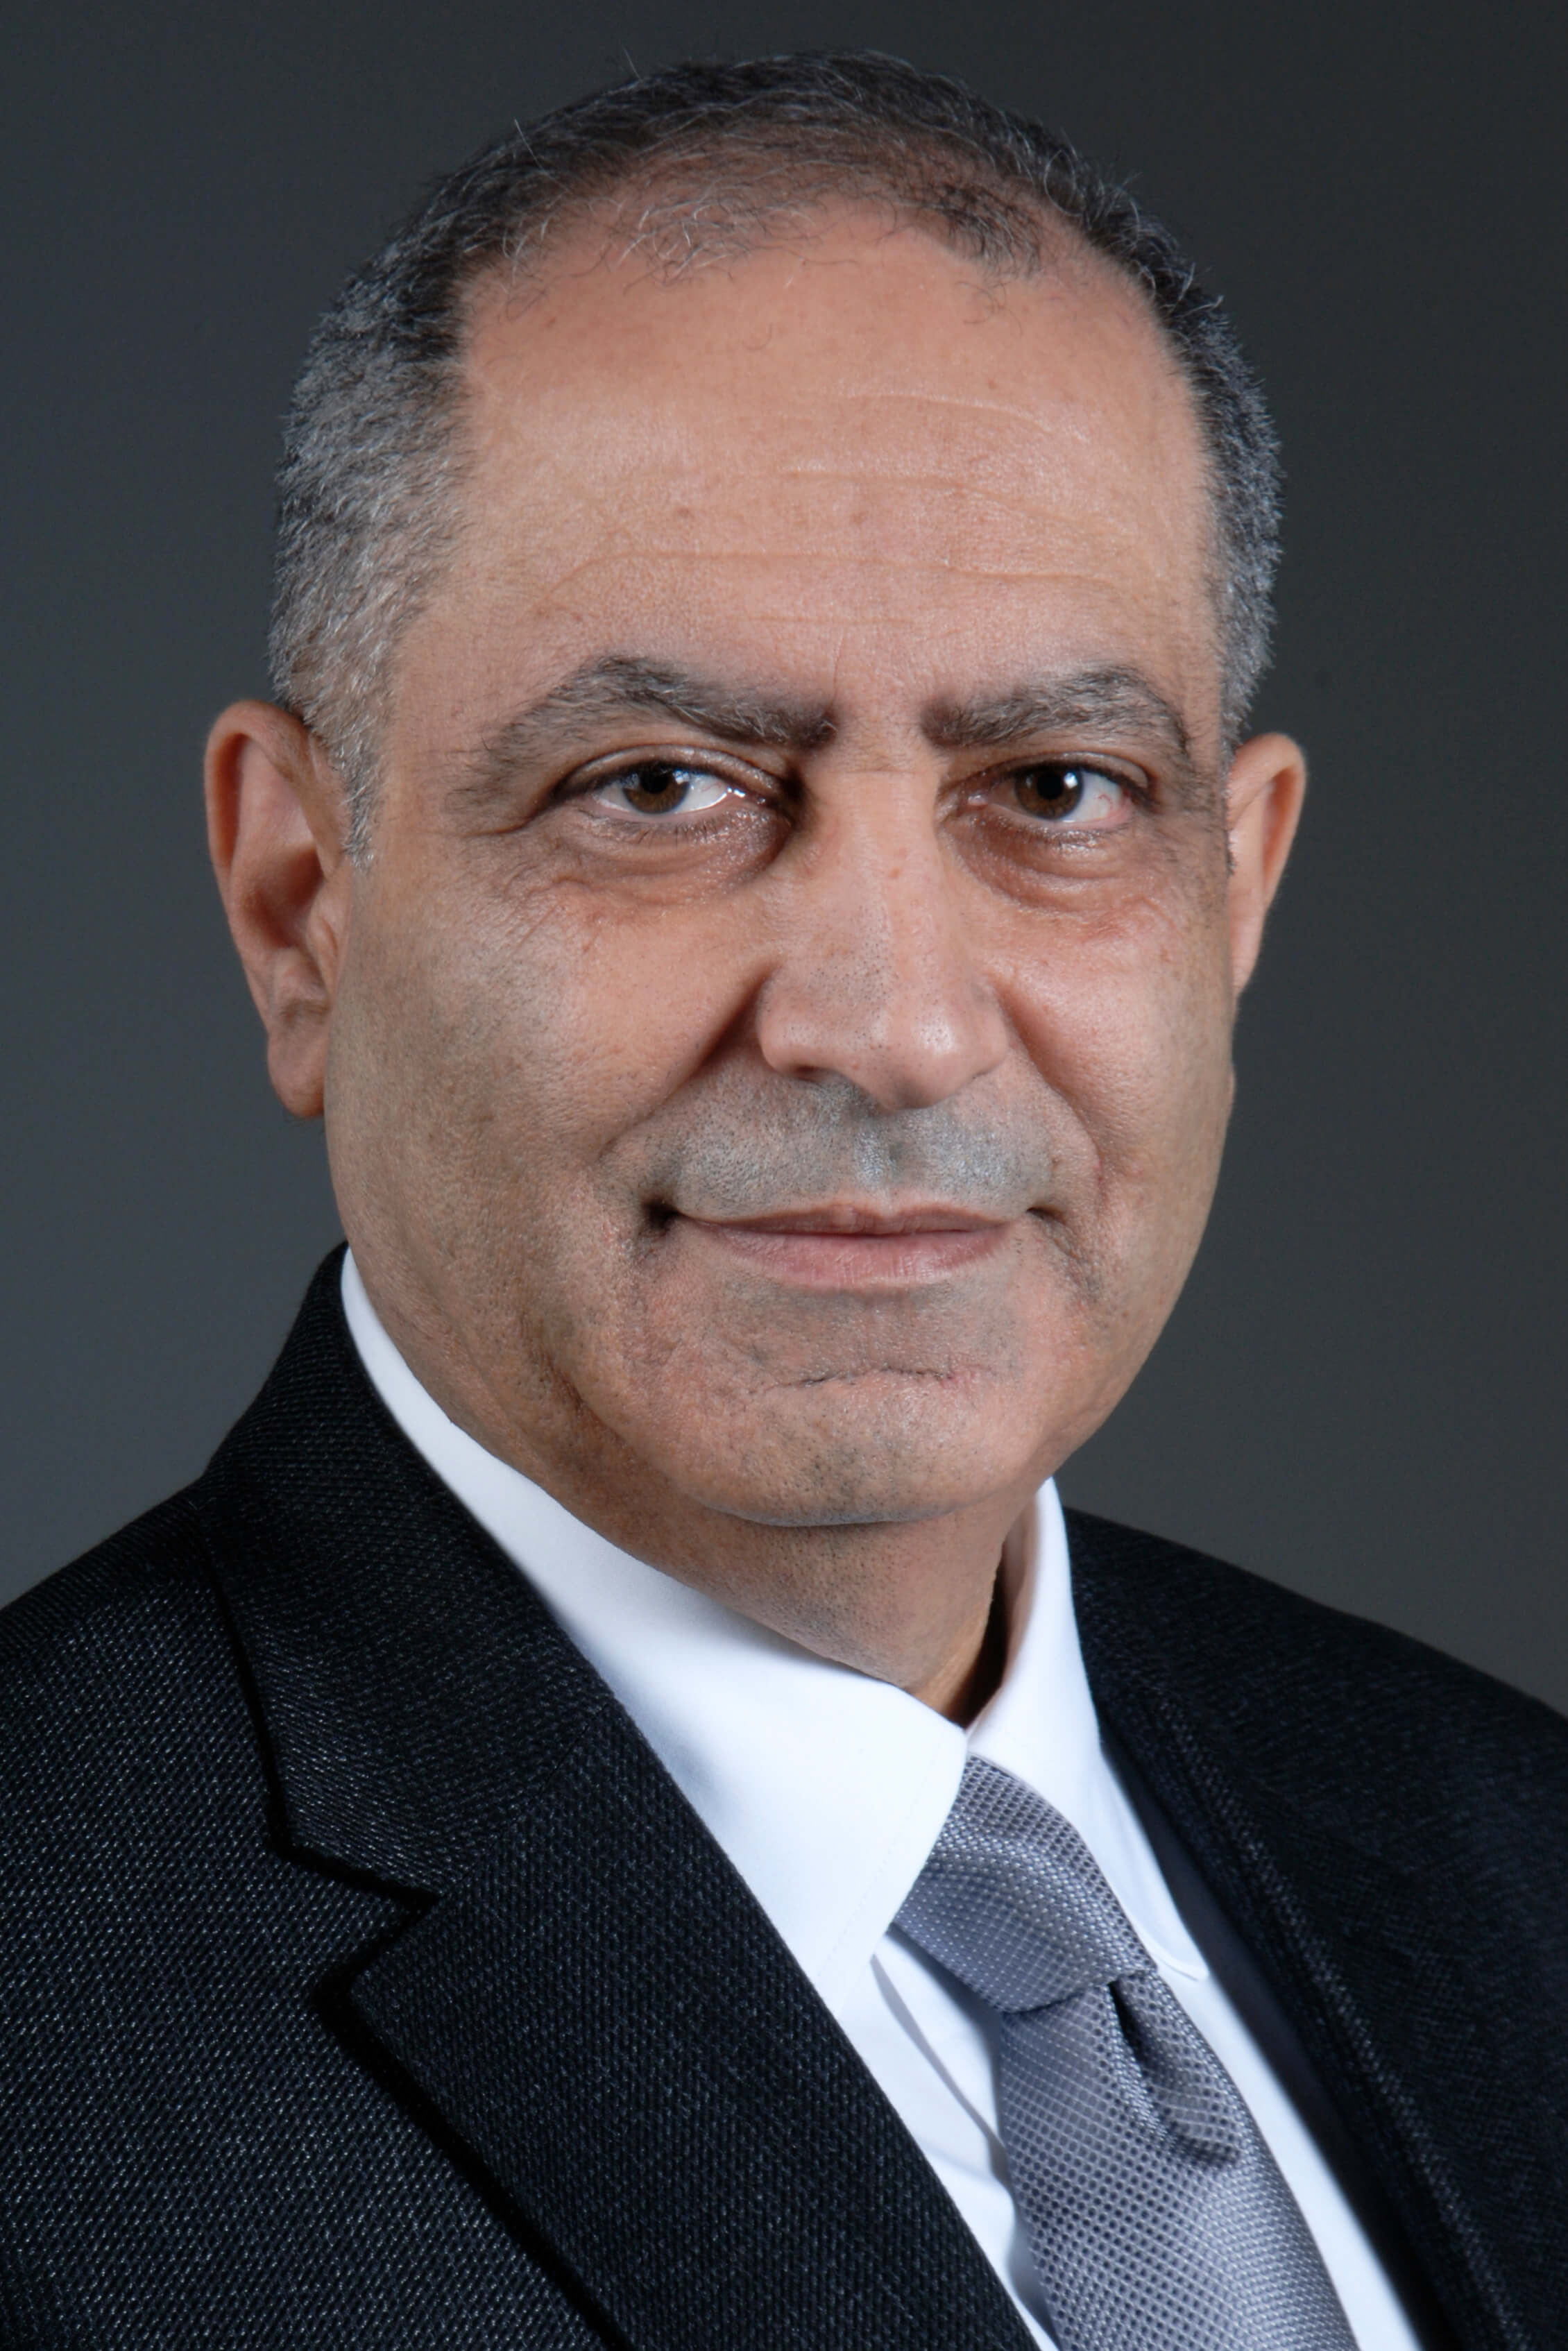 Dr. Assaly